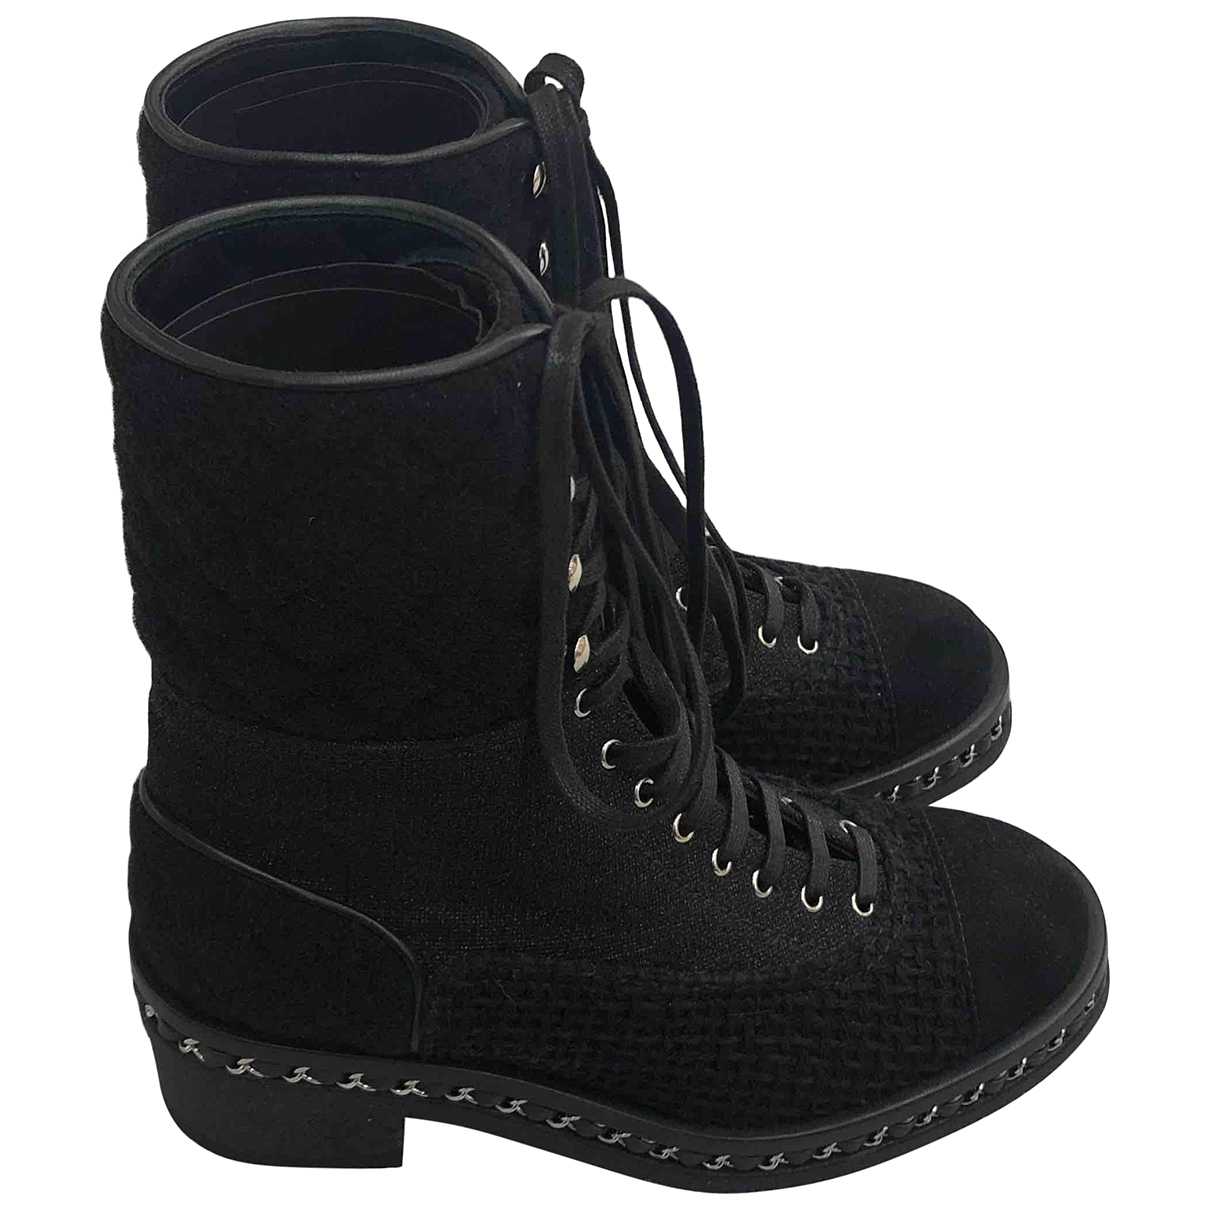 Chanel \N Black Tweed Ankle boots for Women 37 EU